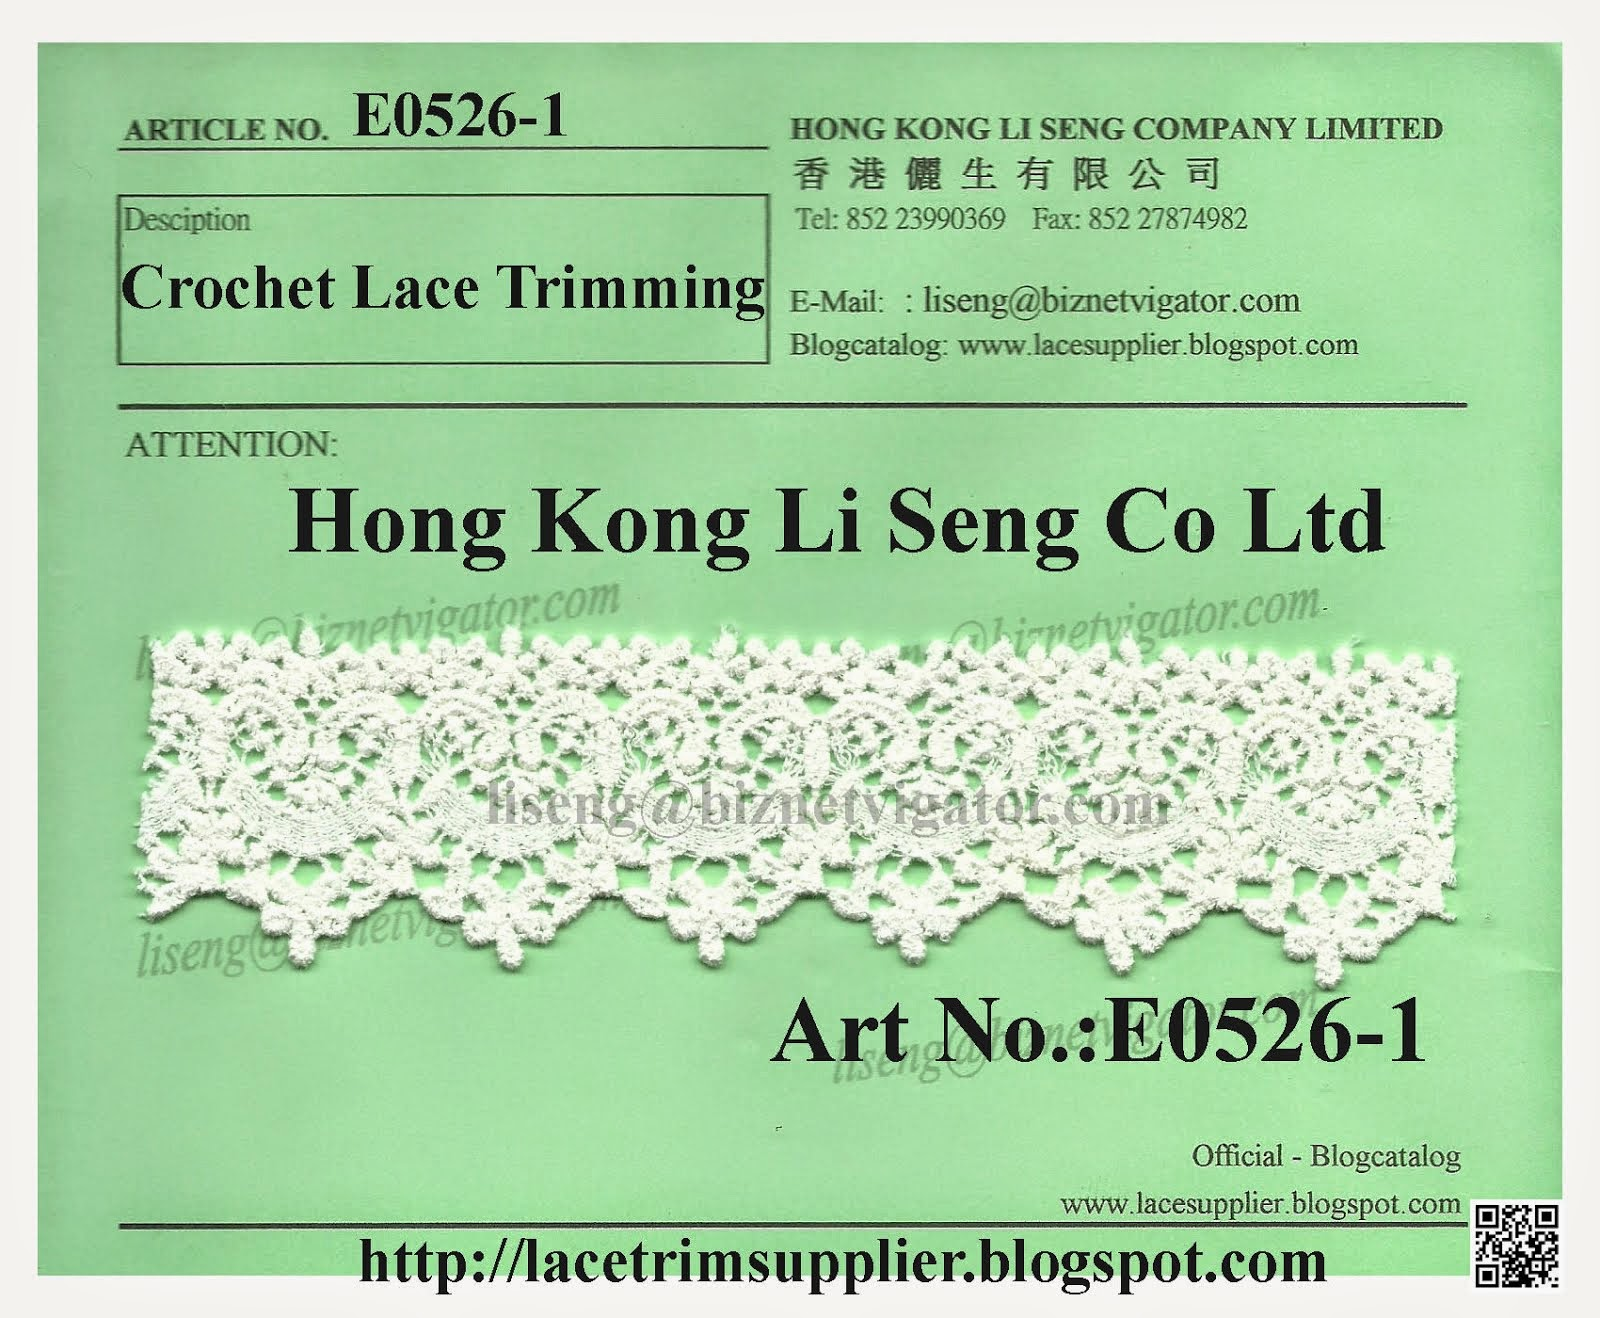 Crochet Lace Trimming Manufacturer and Supplier - Hong Kong Li Seng Co Ltd